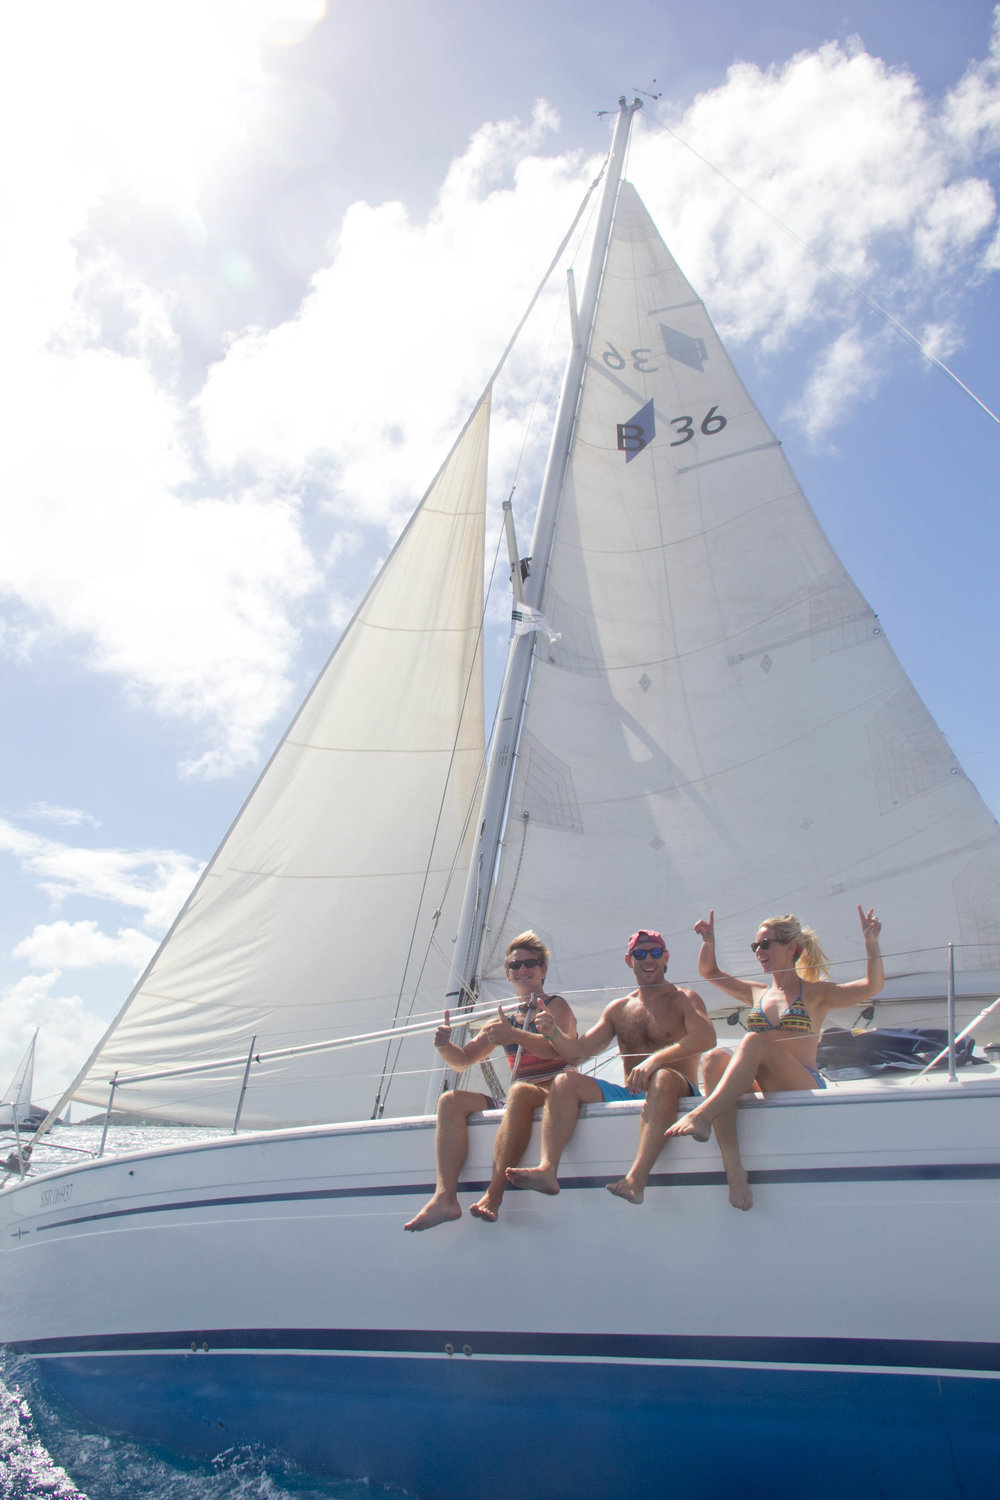 guests-sailing-bvi-tortola-sights.jpg